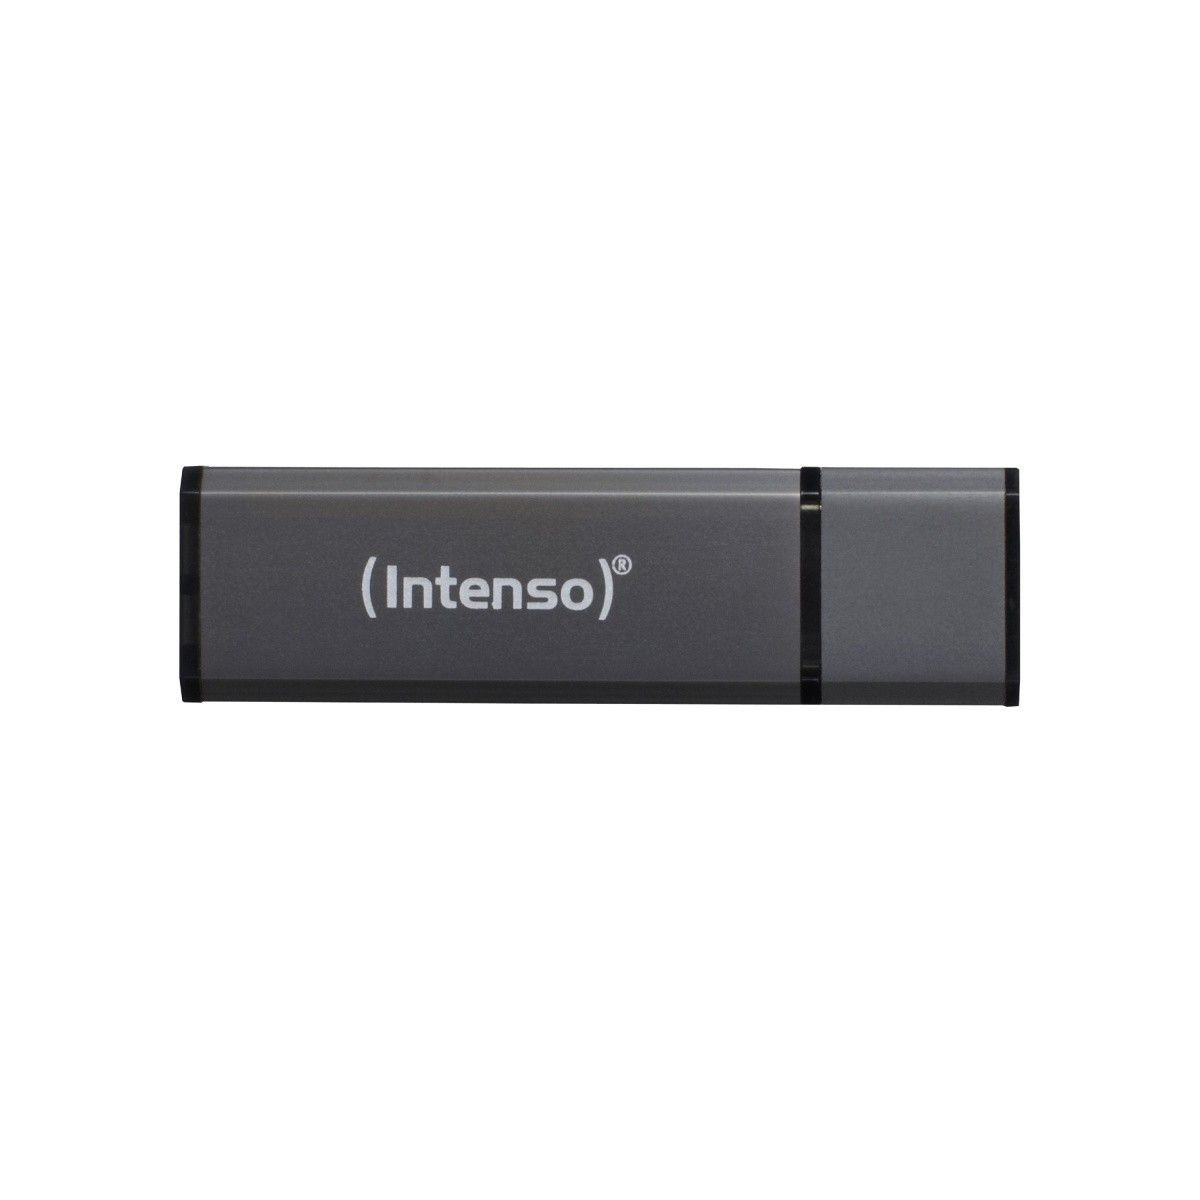 Intenso pamięć USB ALU LINE ANTHRACITE 16GB